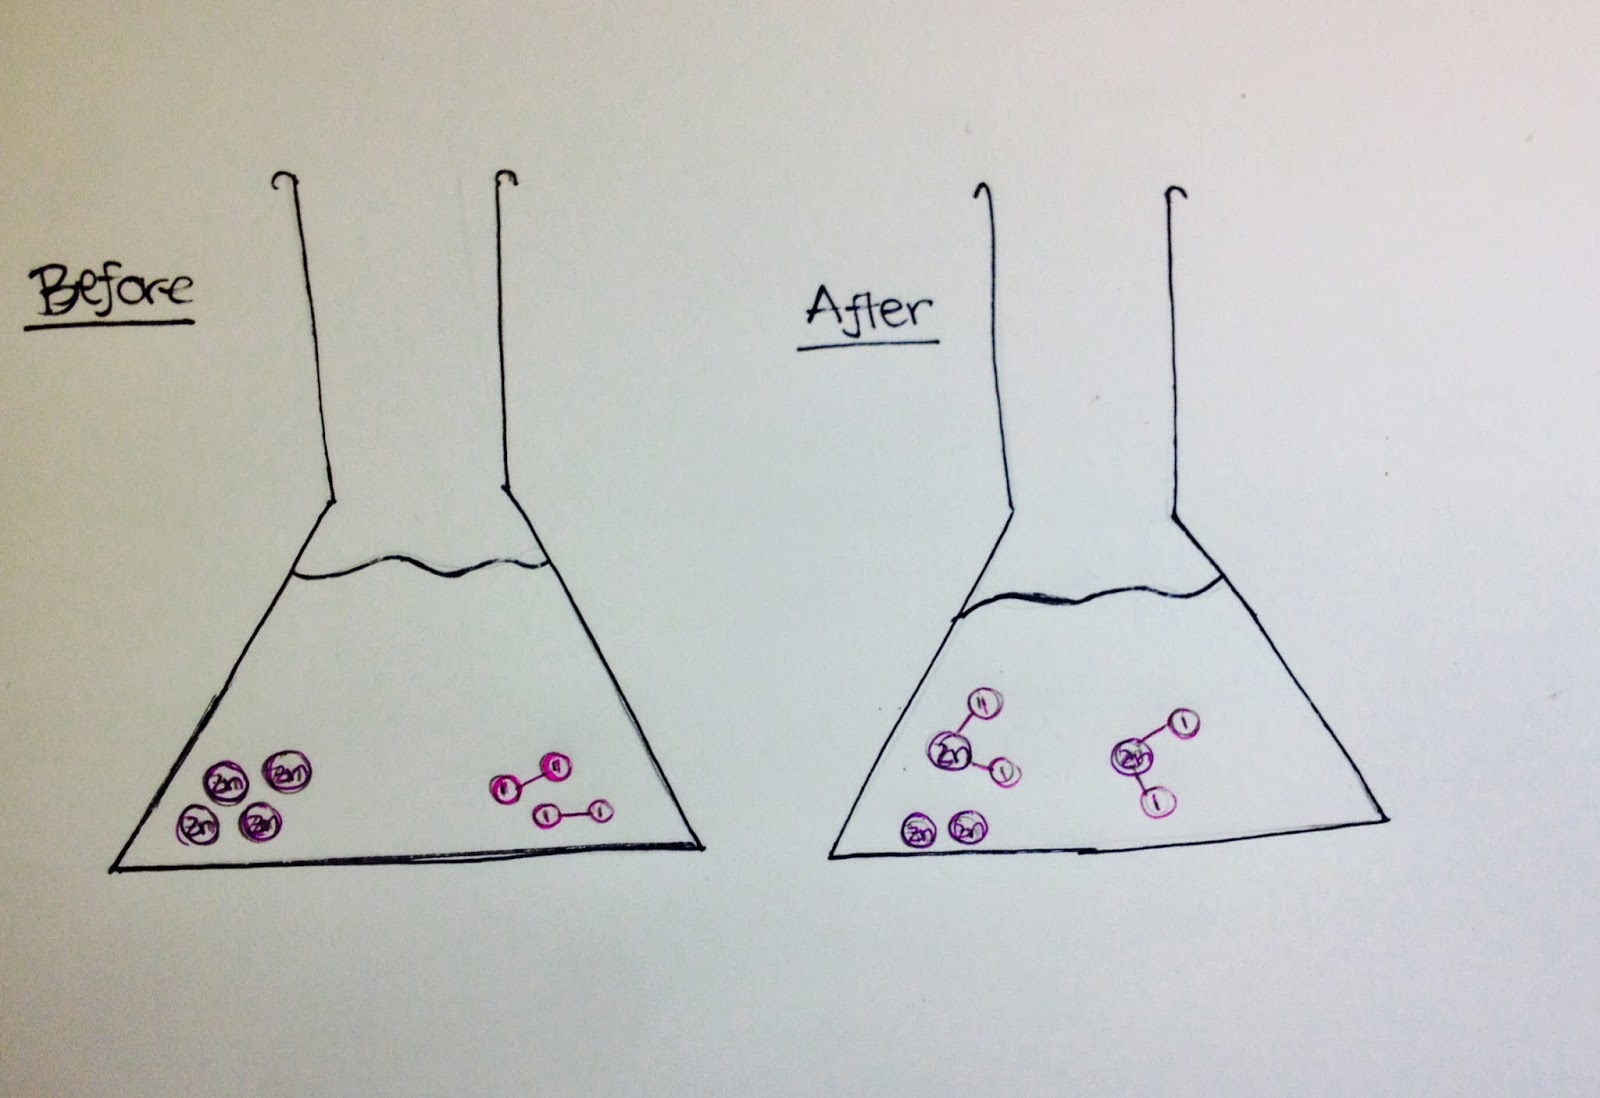 Chemical reactions zinc and iodine lab particle diagram ccuart Image collections